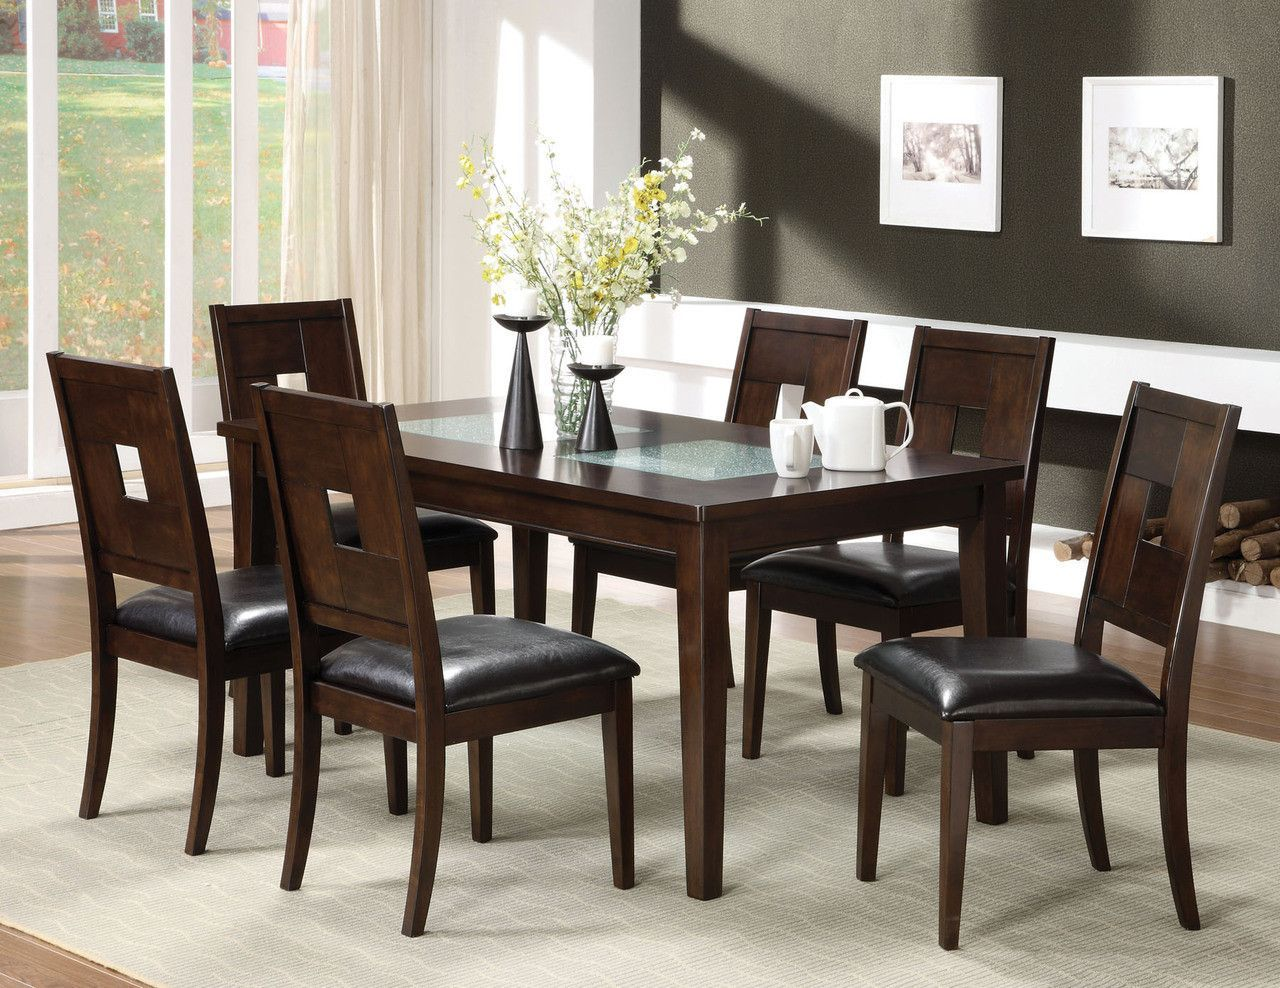 CM3093T Dining Table With 4 Chairs 5PcSet